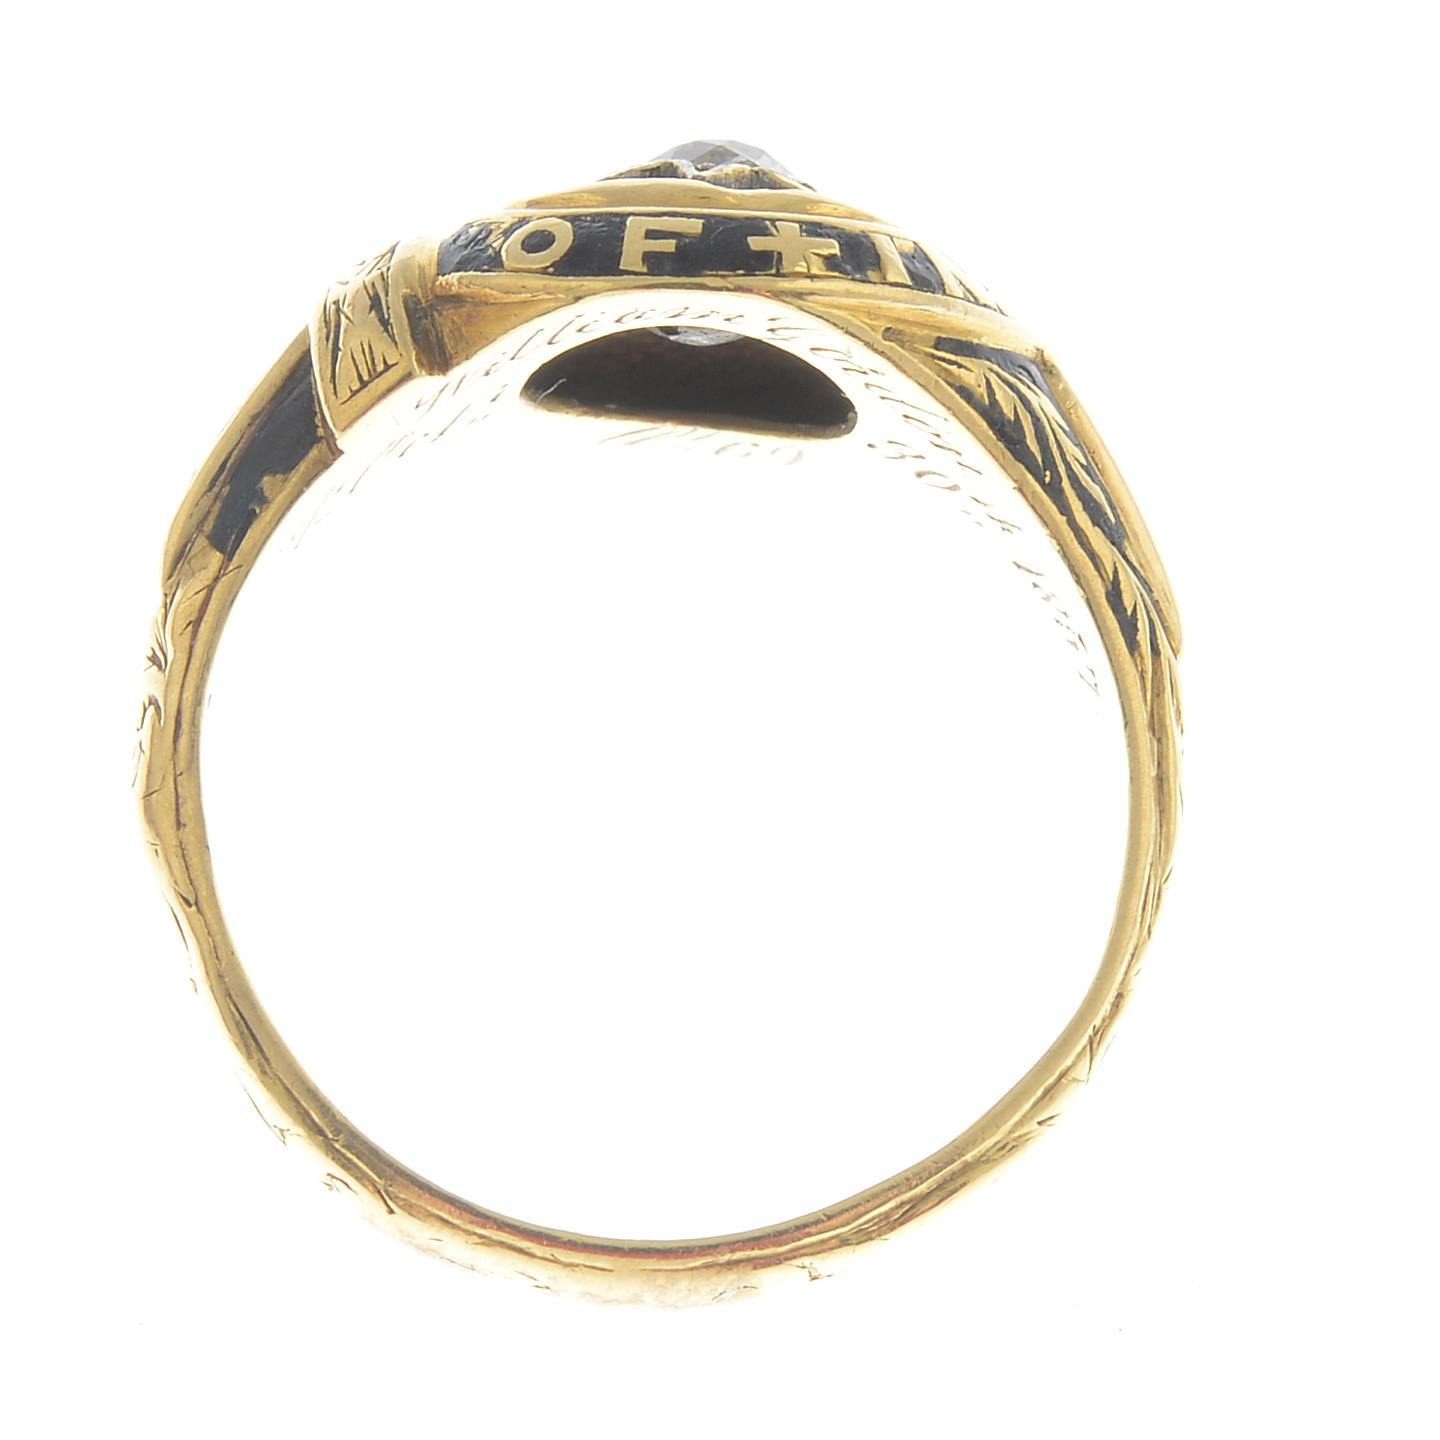 Lot 10 - An early Victorian 18ct gold old-cut diamond and black enamel memorial ring.